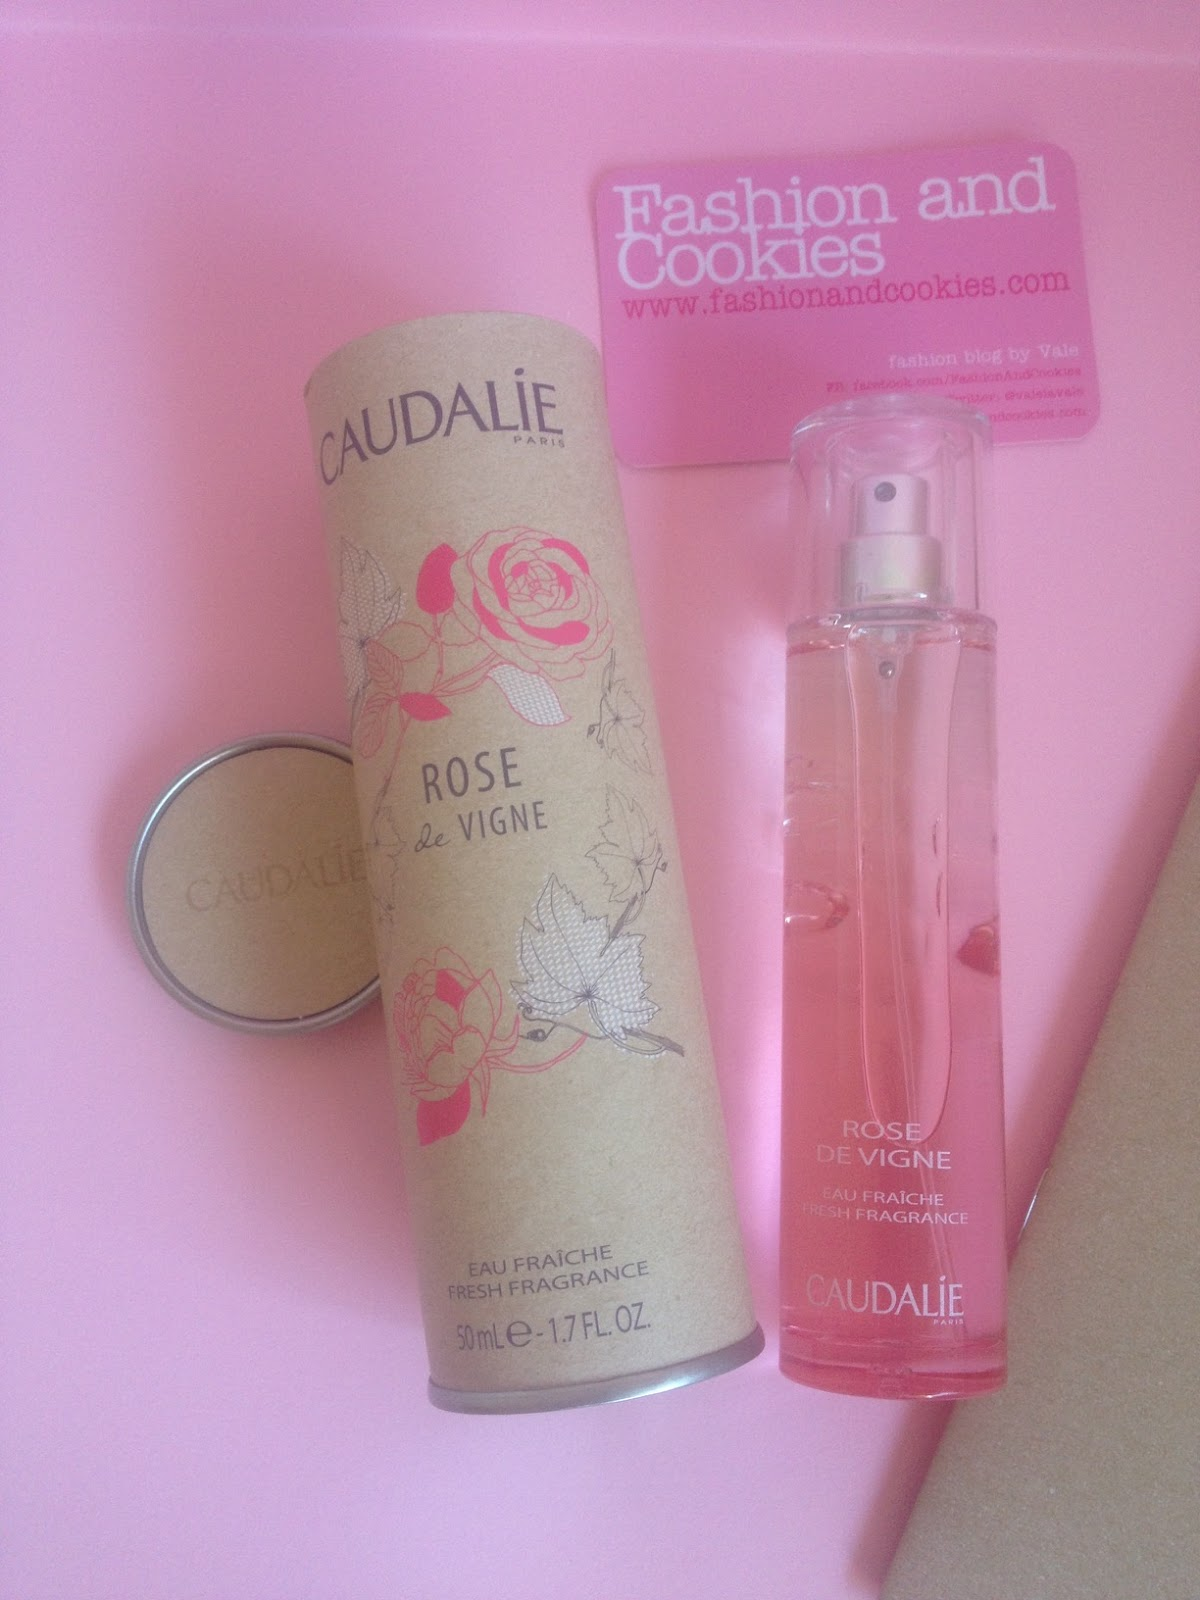 Caudalie rose de vigne on Fashion and Cookies fashion and beauty blog